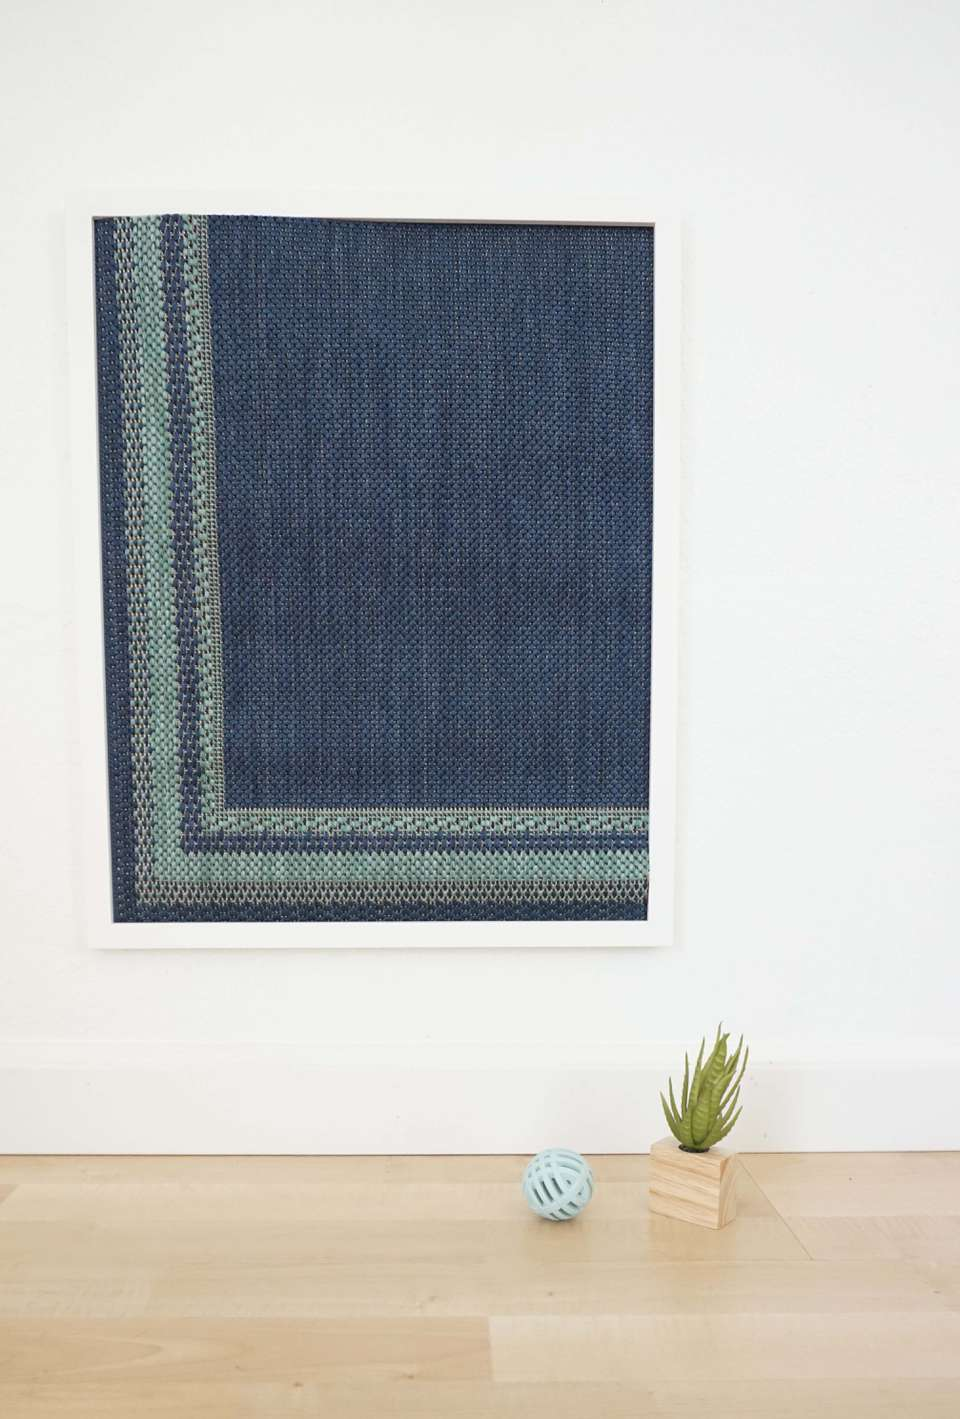 A blue framed rug with a tiny plant and cat toy.